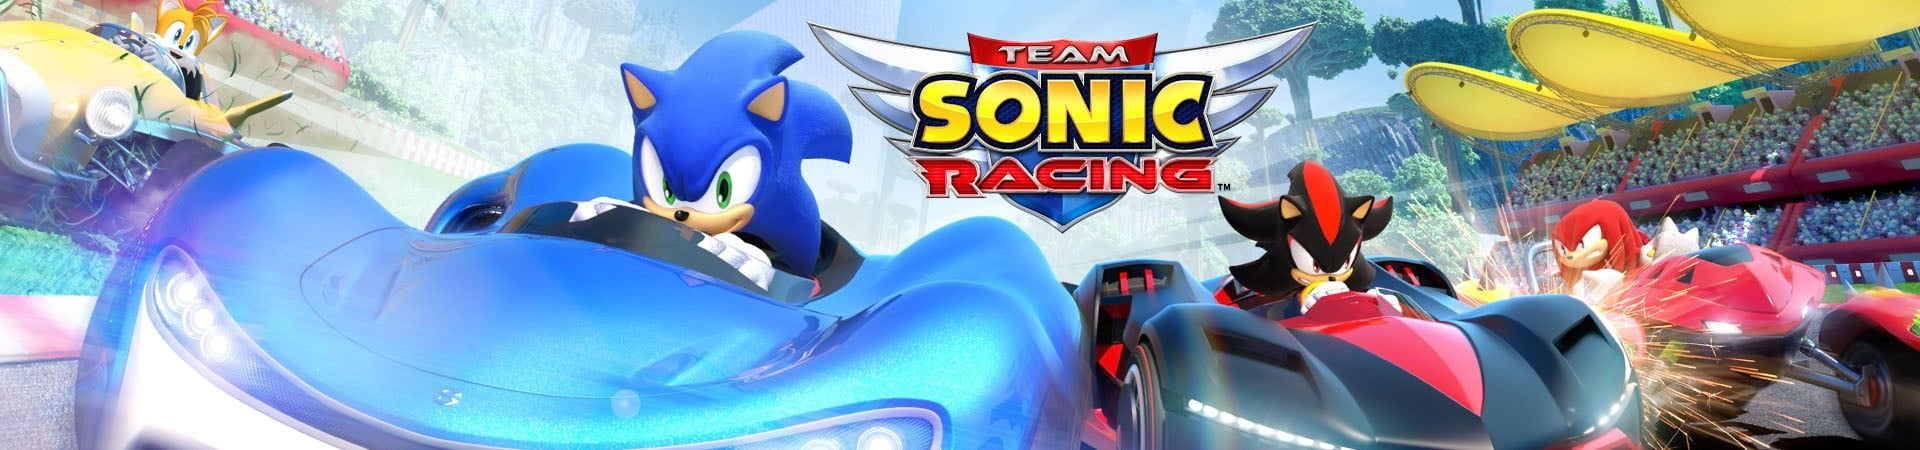 Team Sonic Racing (PS4) Review | GamePitt - SEGA